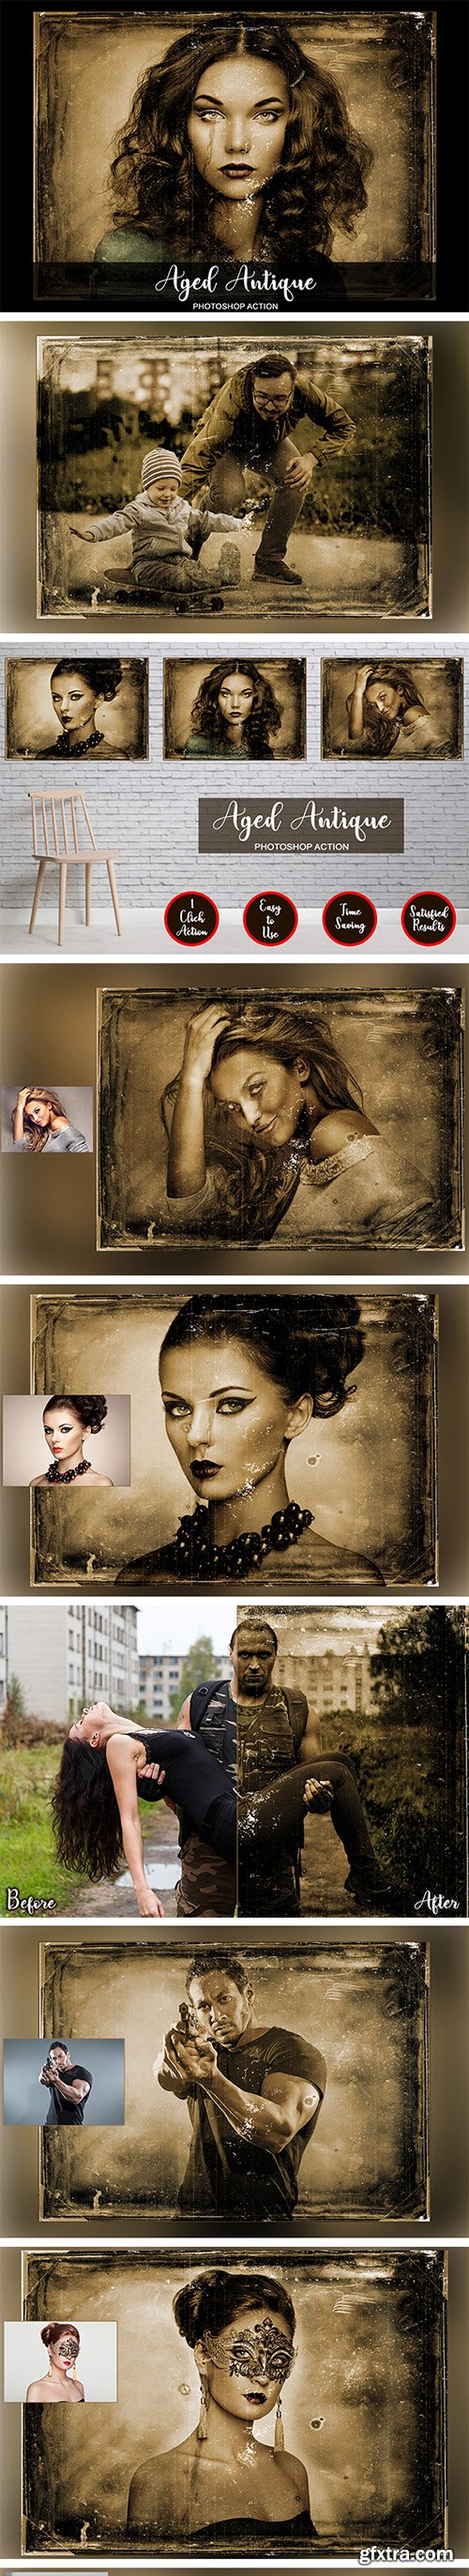 Graphicriver Aged Antique Photoshop Action 22933869